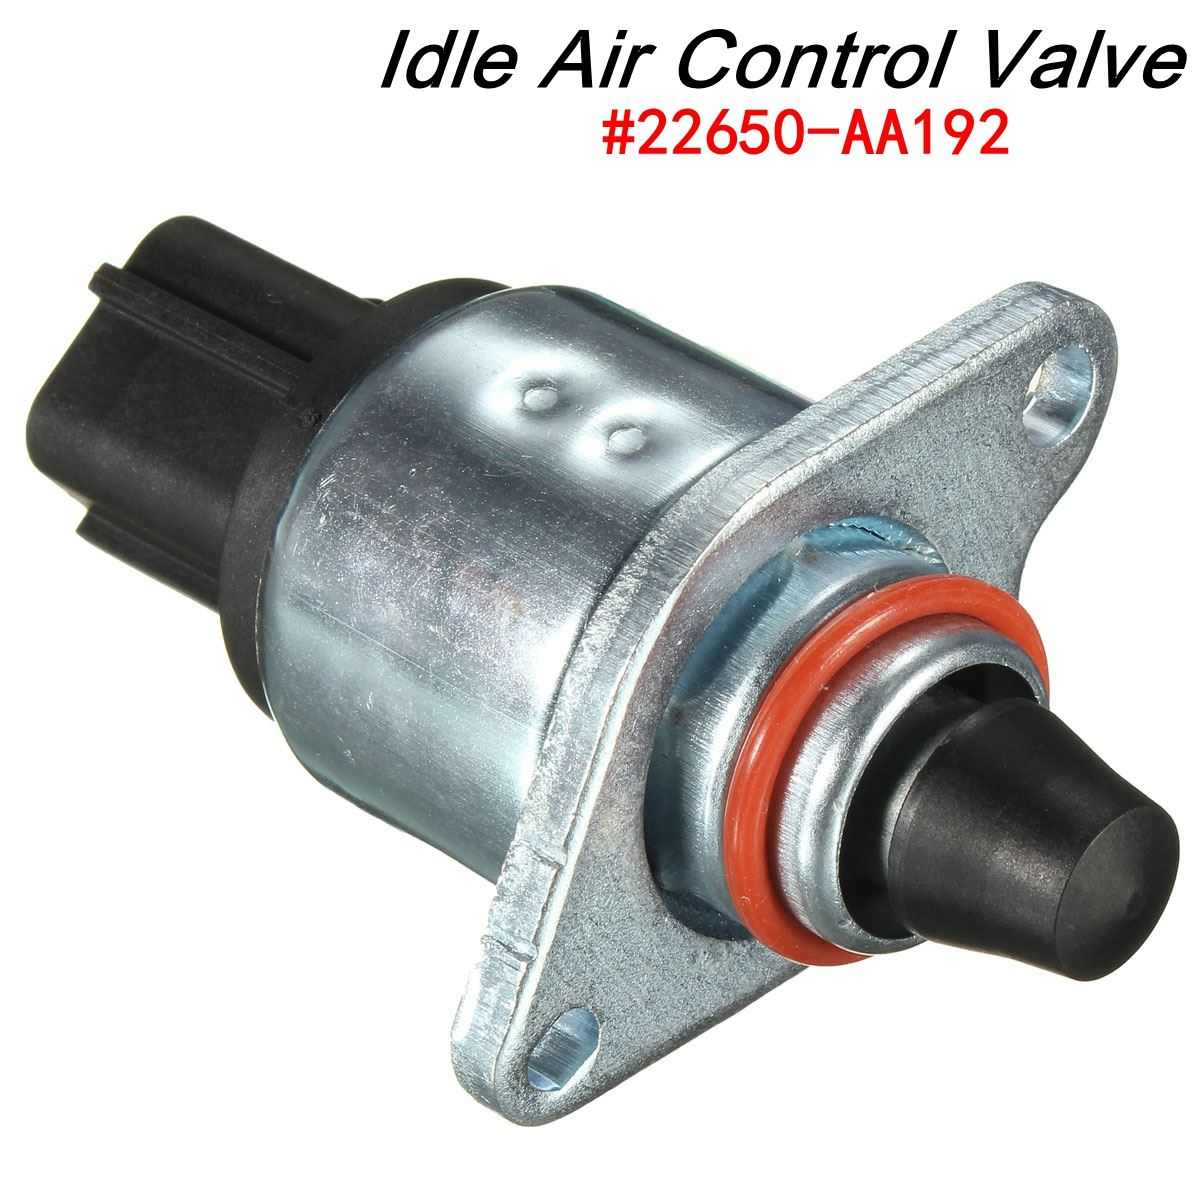 Newest Idle Air Speed Control Valve For 2650AA192 22650AA19C A33 661 R02 IAC